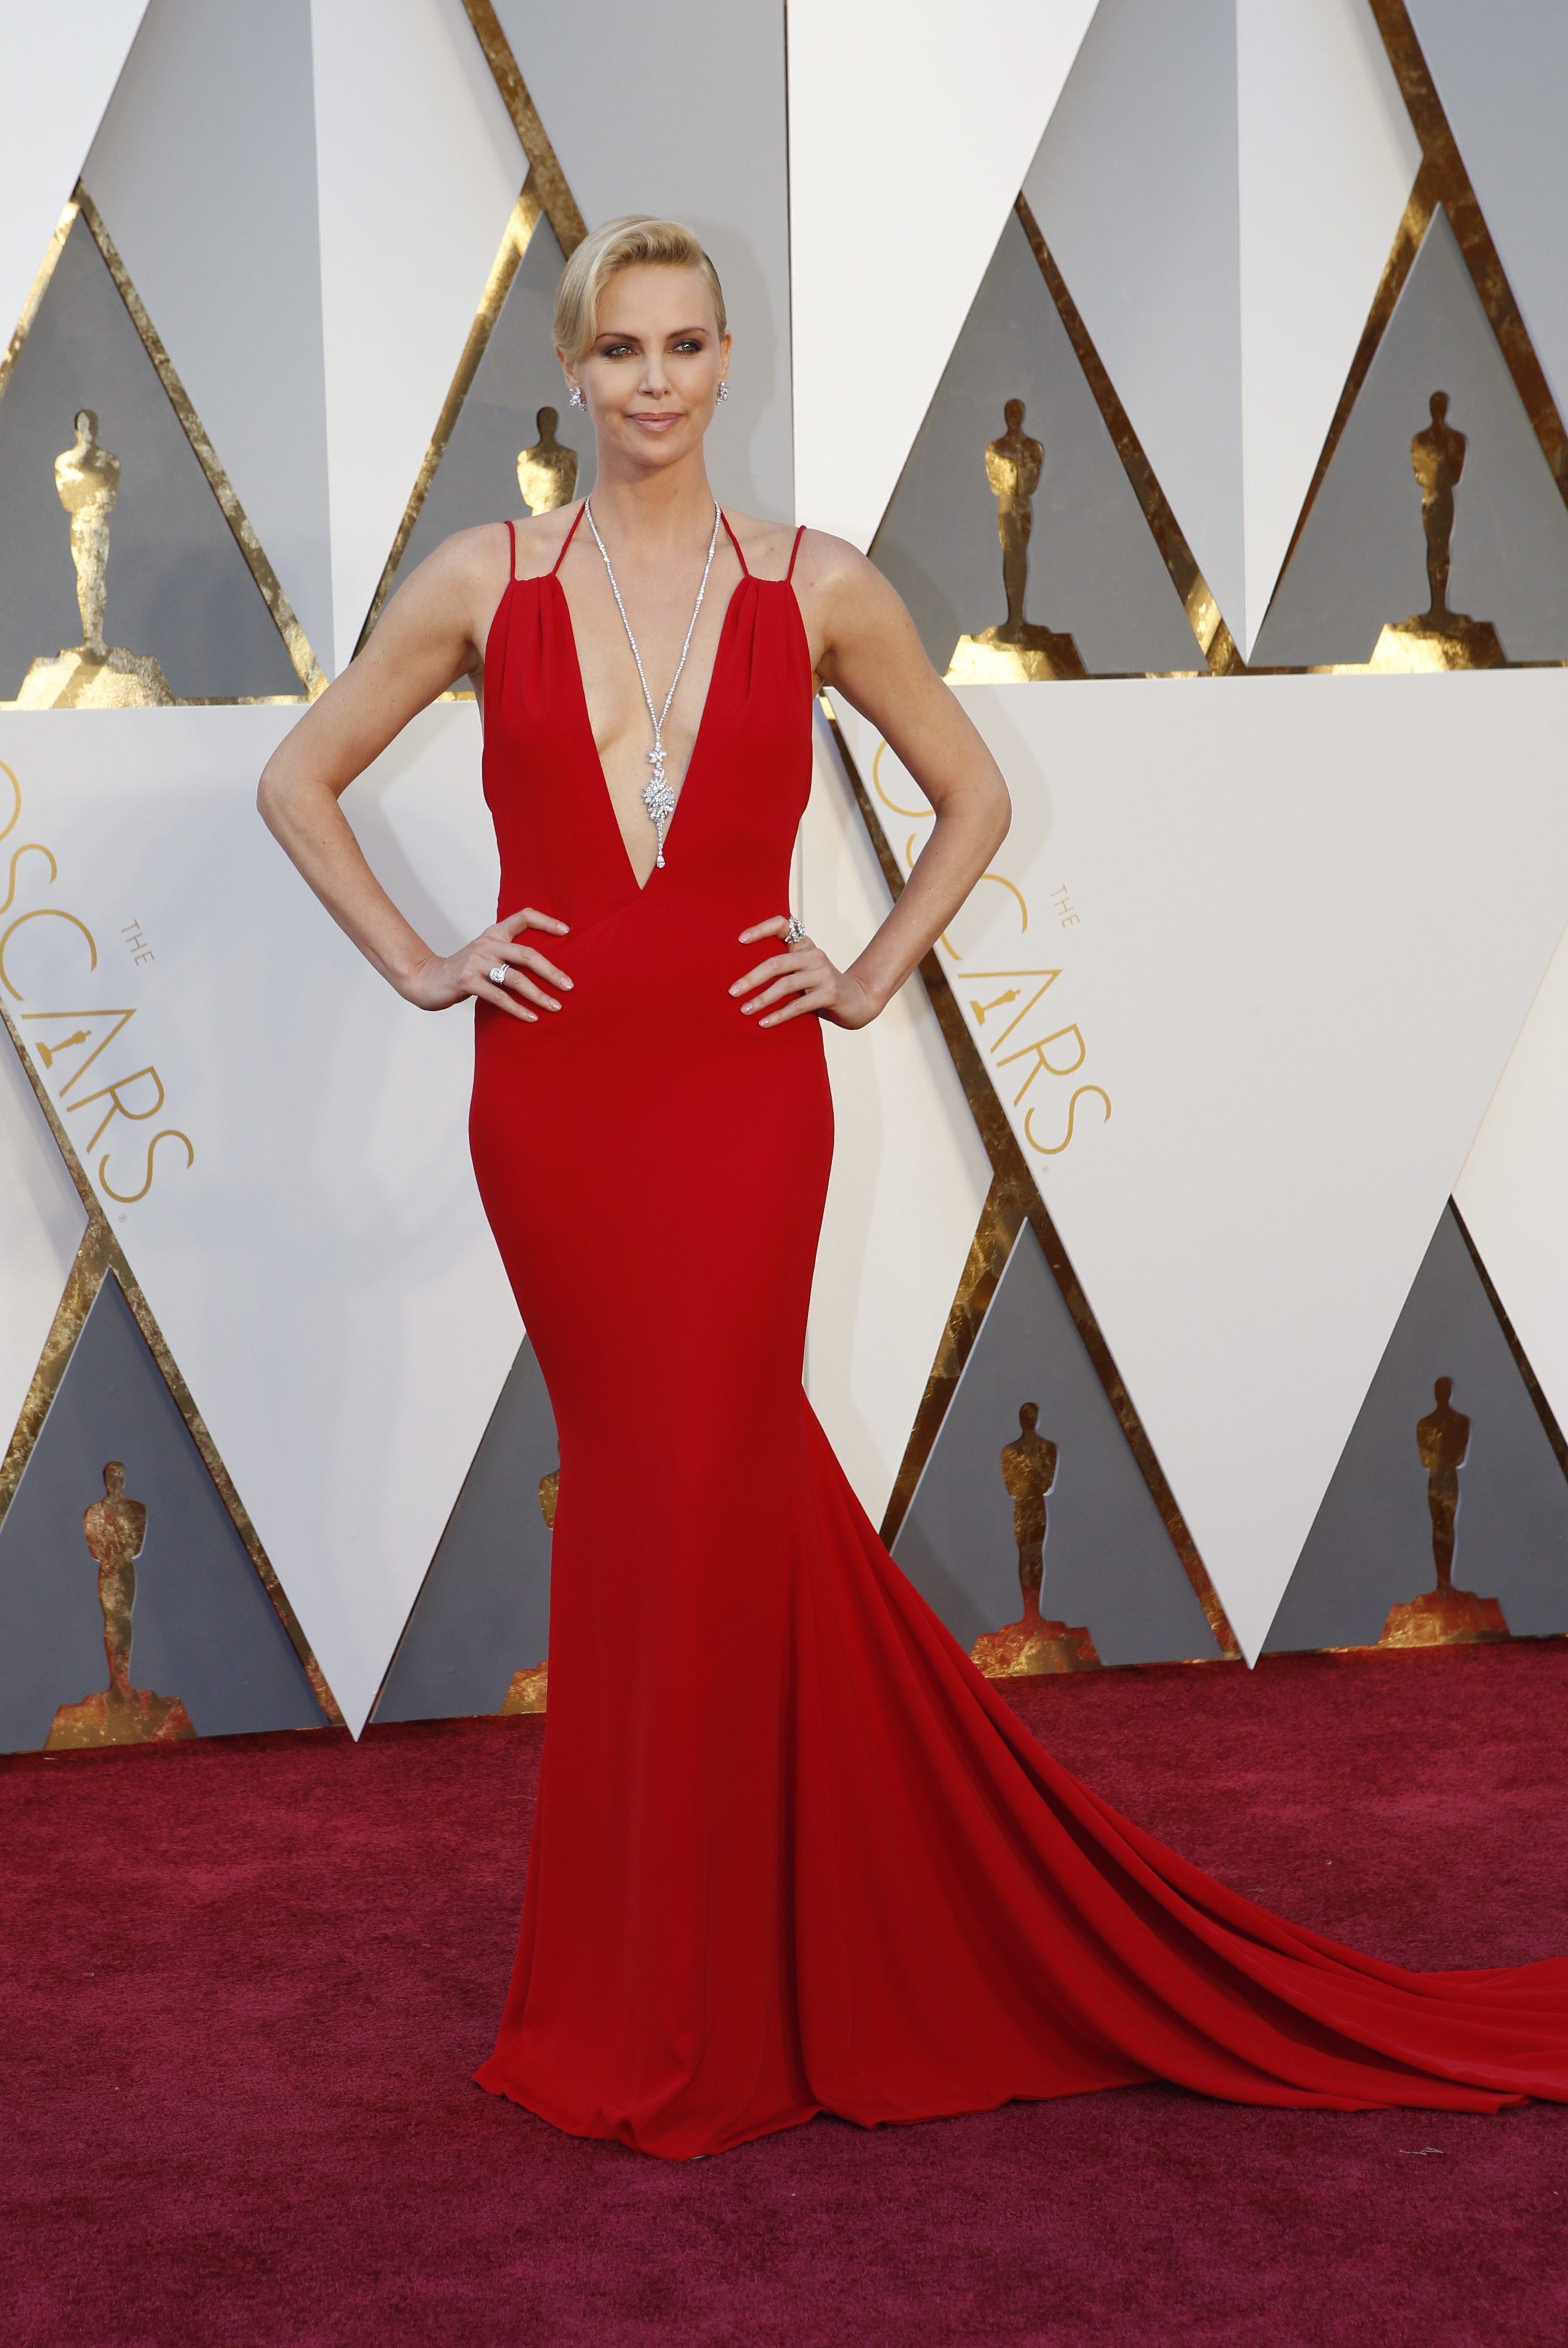 Charlize Theron at the 88th Academy Awards.